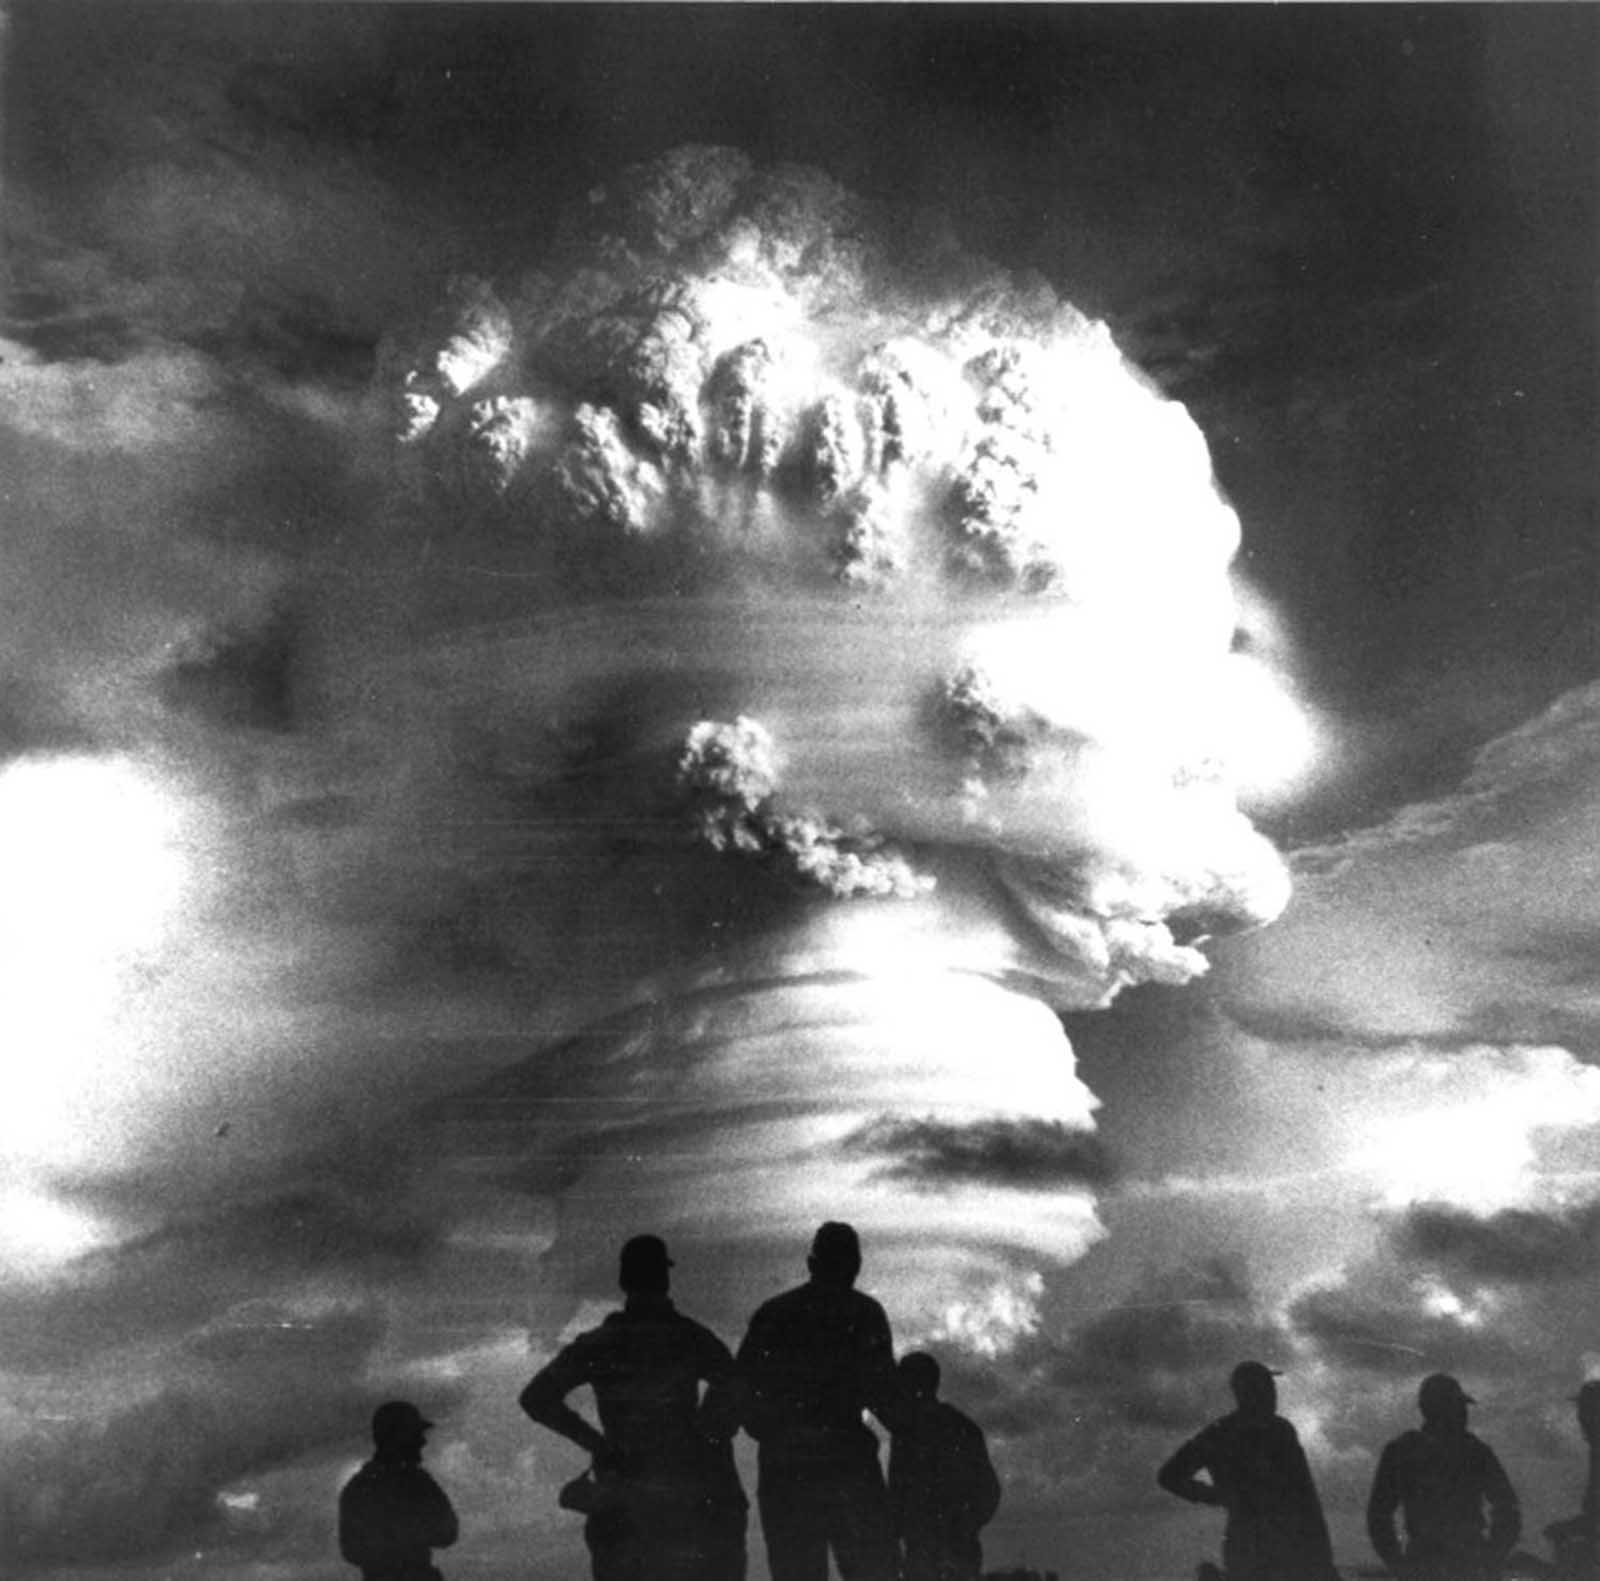 Observers view atmospheric testing during Operation Hardtack I, a thermonuclear detonation during the Pacific tests in 1958.